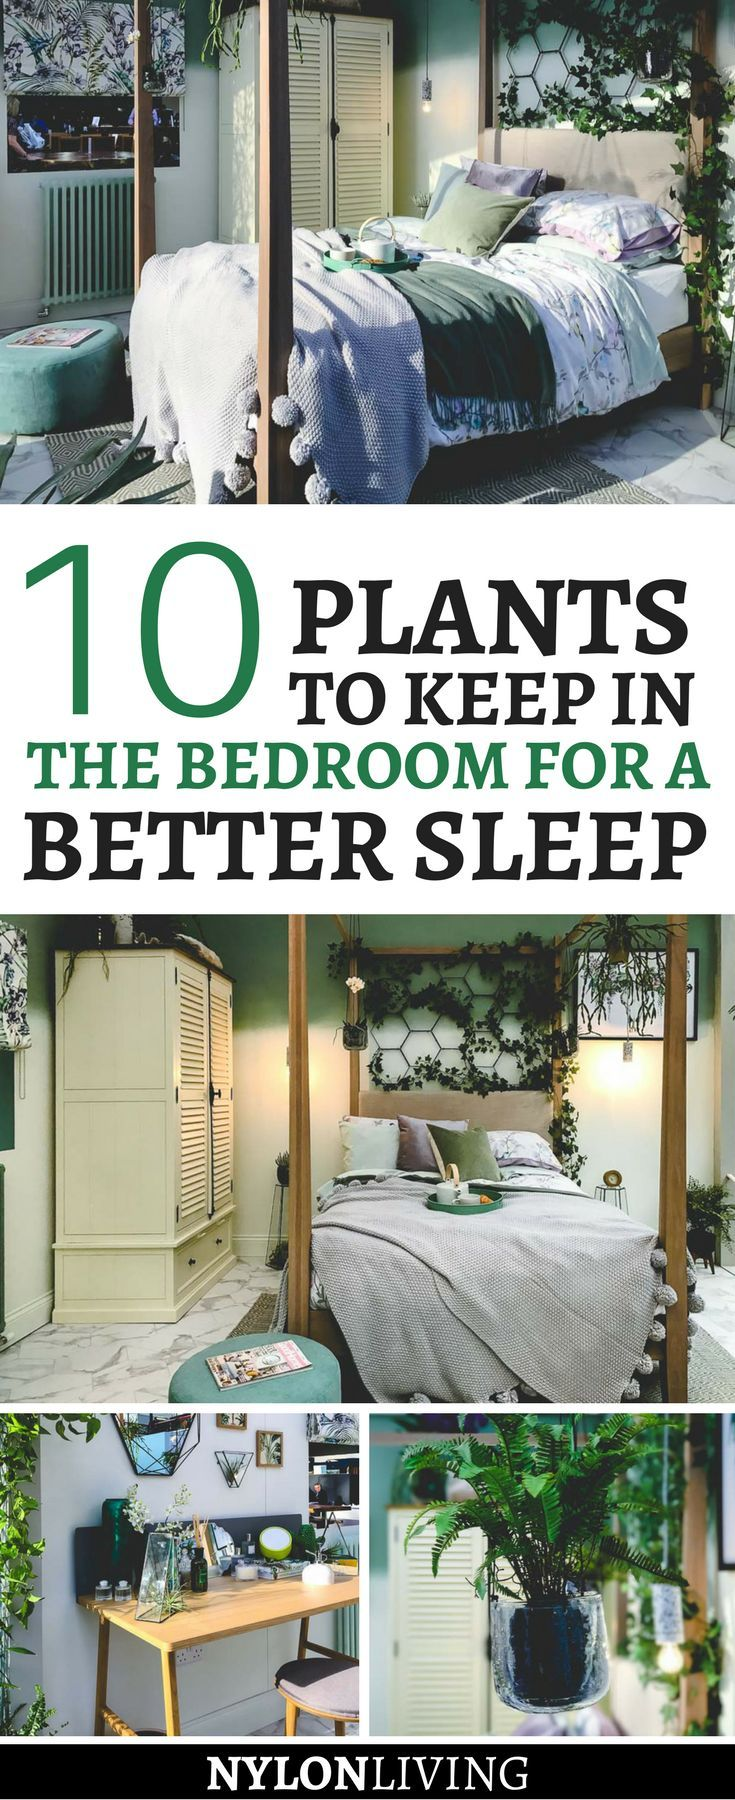 Are you a plant lover? Did you know that keeping plants in your bedroom actually improves your sleep? Check out these decor ideas for a plant lover bedroom. From hanging plants to a terrarium instead of a traditional night table, you'll find lots of plant decor ideas. | plants for the bedroom | plant decor bedroom | plant design interior | plant interior design | bedroom design plants | plant lover aesthetic #plants #bedroomdesign - via @nylonliving